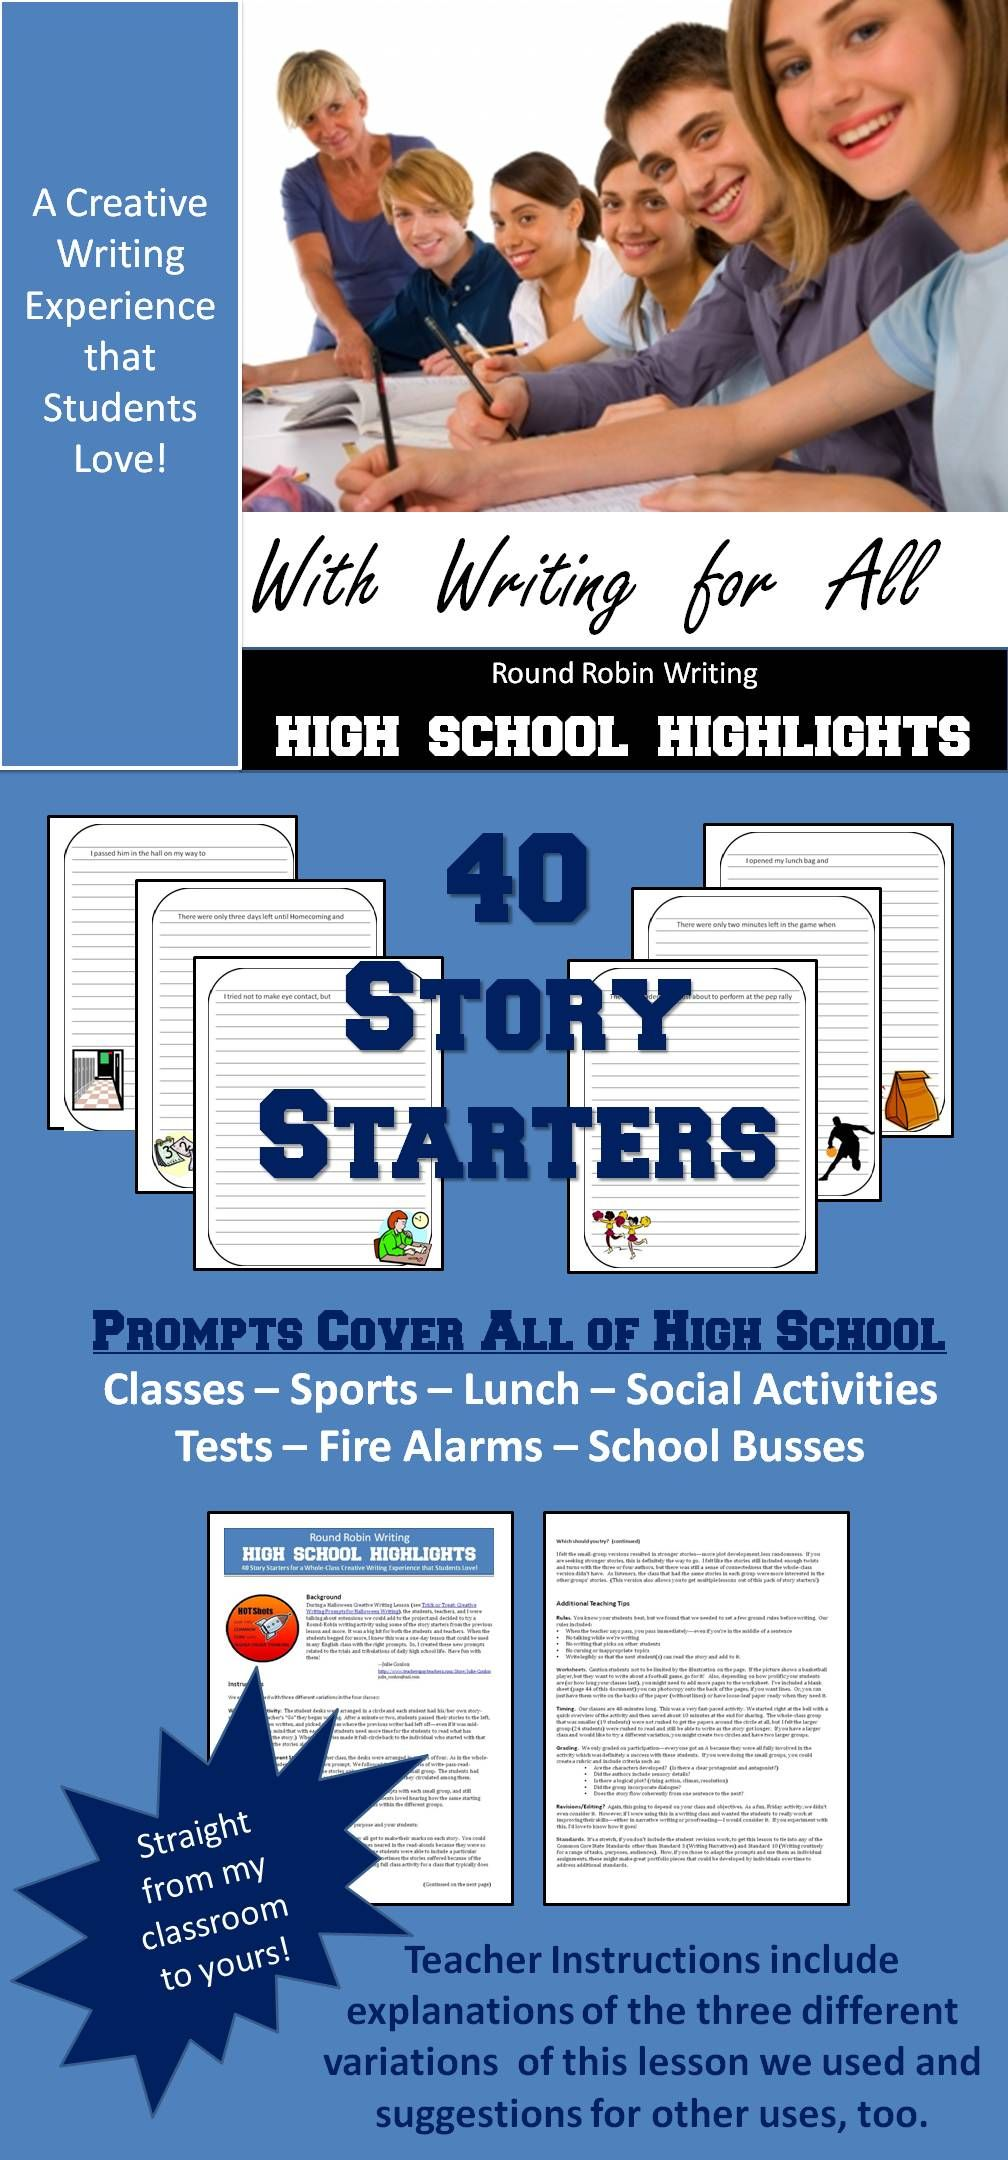 fun creative writing activities for high school students Summary: simmons presents a series of creative activities that have advanced her high school students' vocabularies and impressed on them the power of words write now newsletter get more great resources on teaching and writing delivered to your inbox every month by subscribing to our write now newsletter.